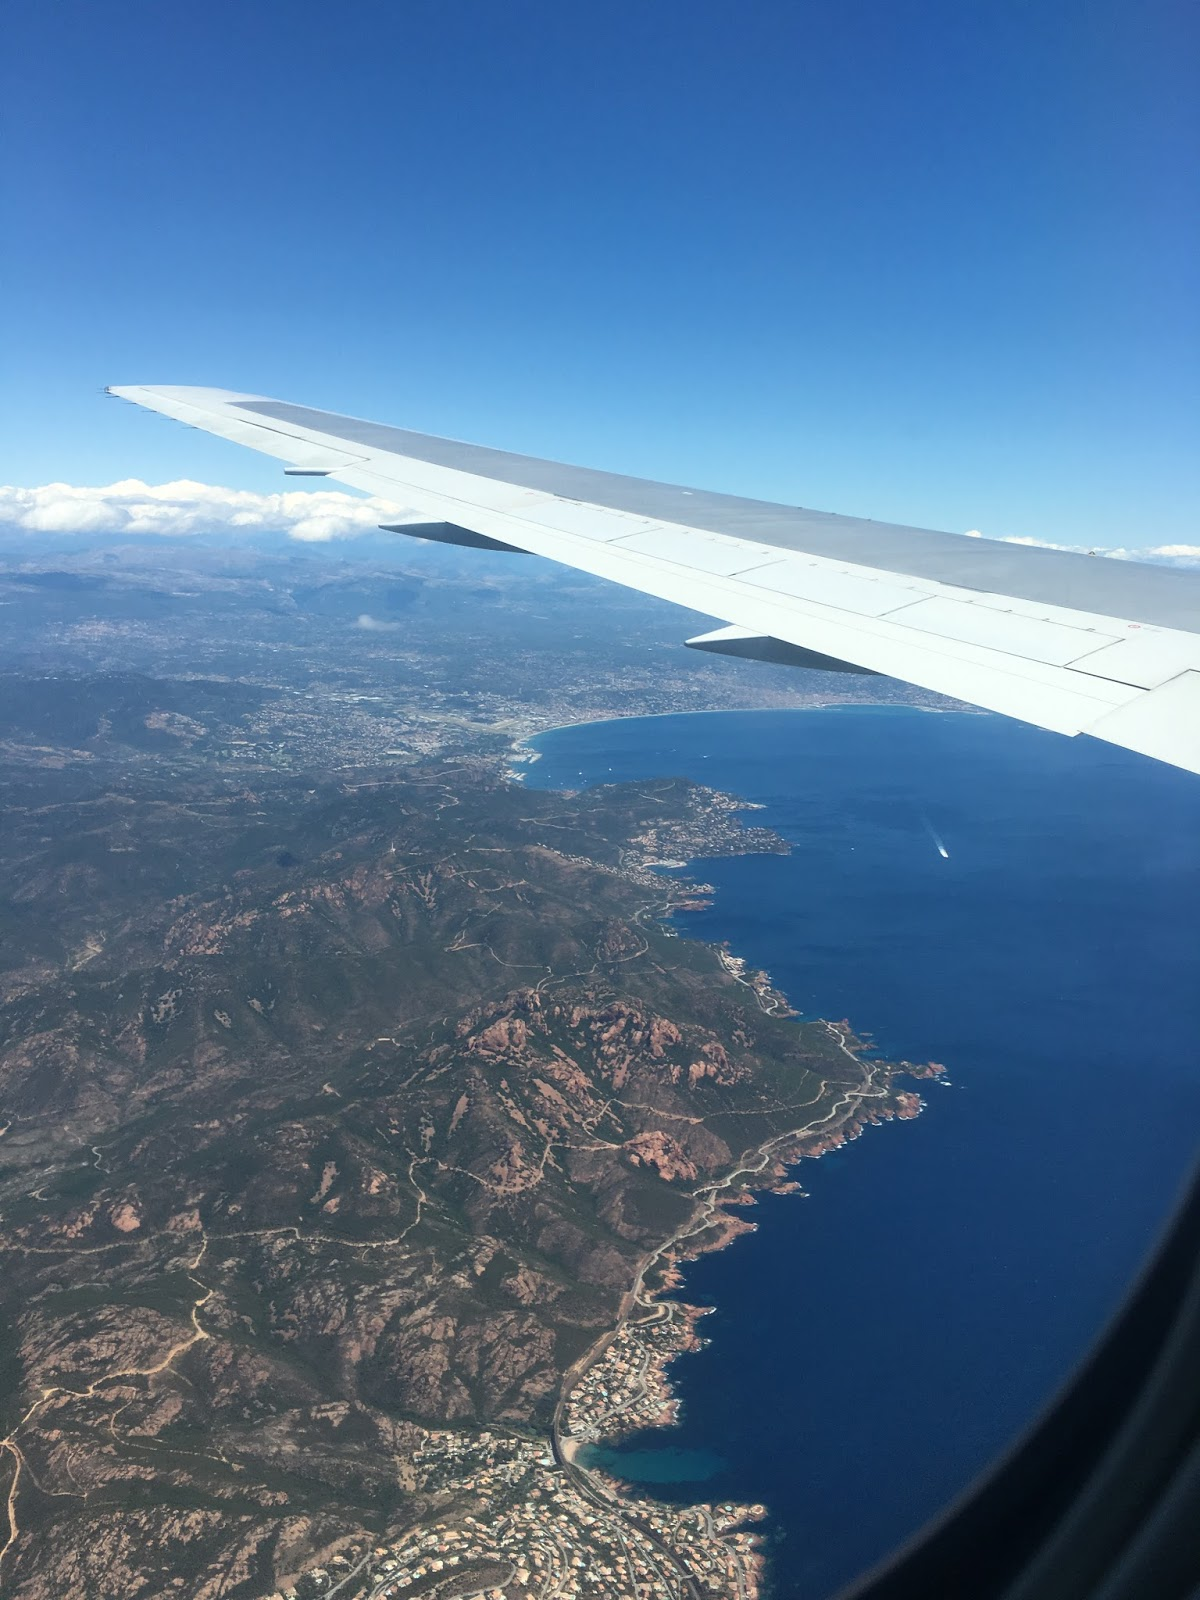 British Airways landing into Nice Côte d'Azur International Airport